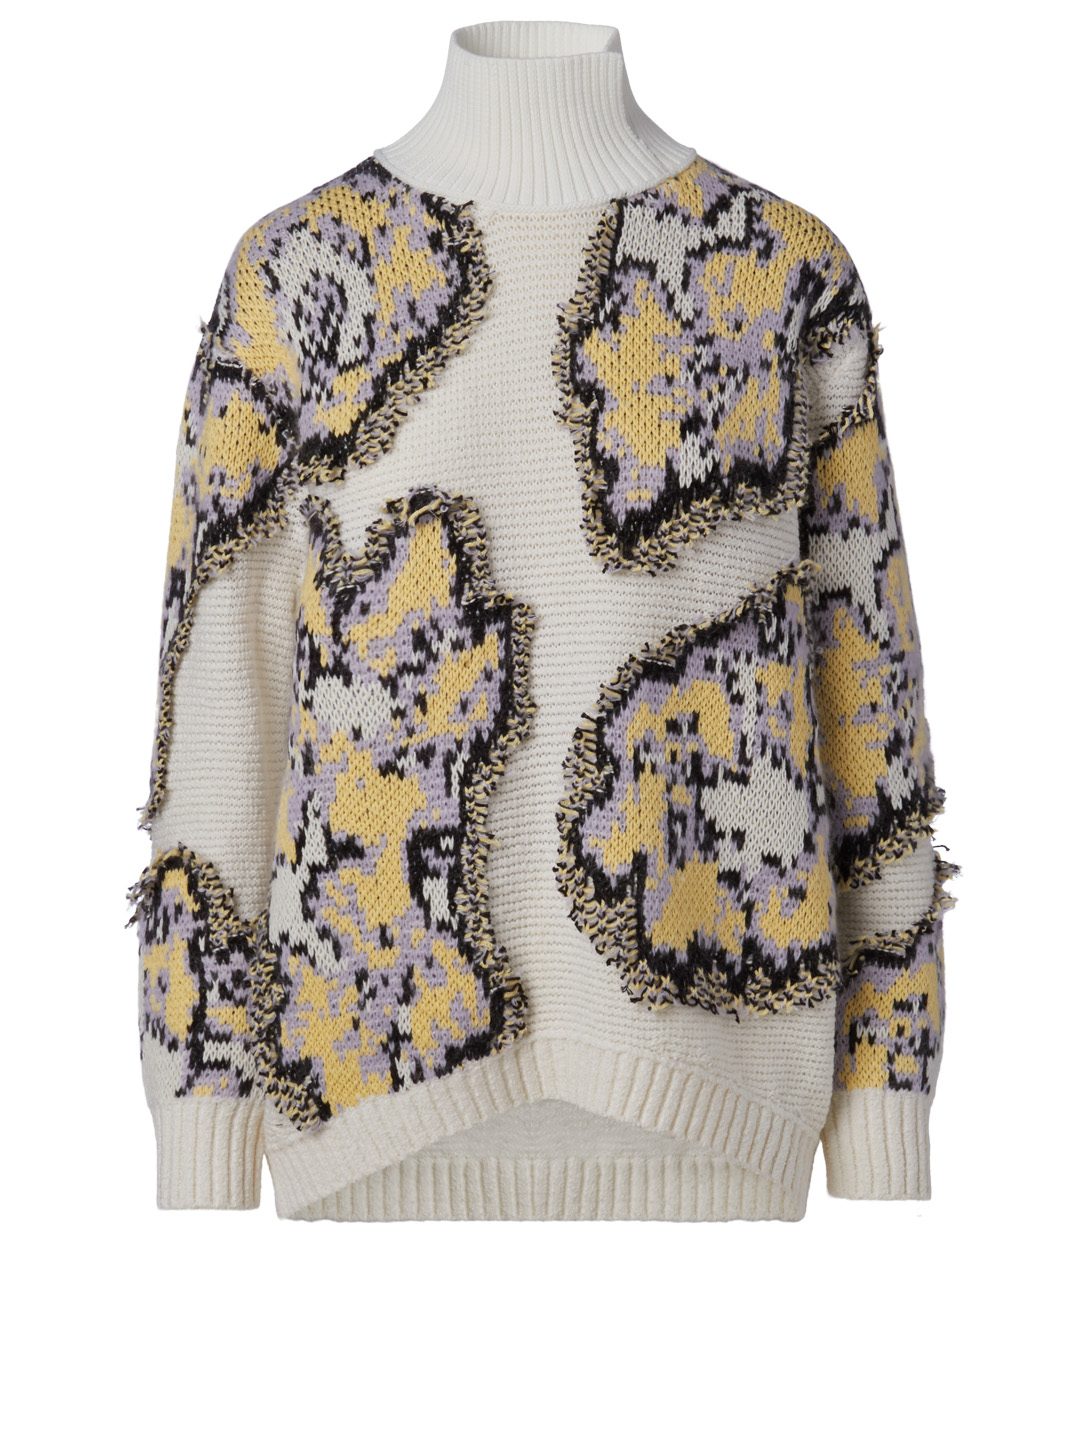 3.1 PHILLIP LIM Wool-Blend Sweater In Abstract Daisy Print Women's White